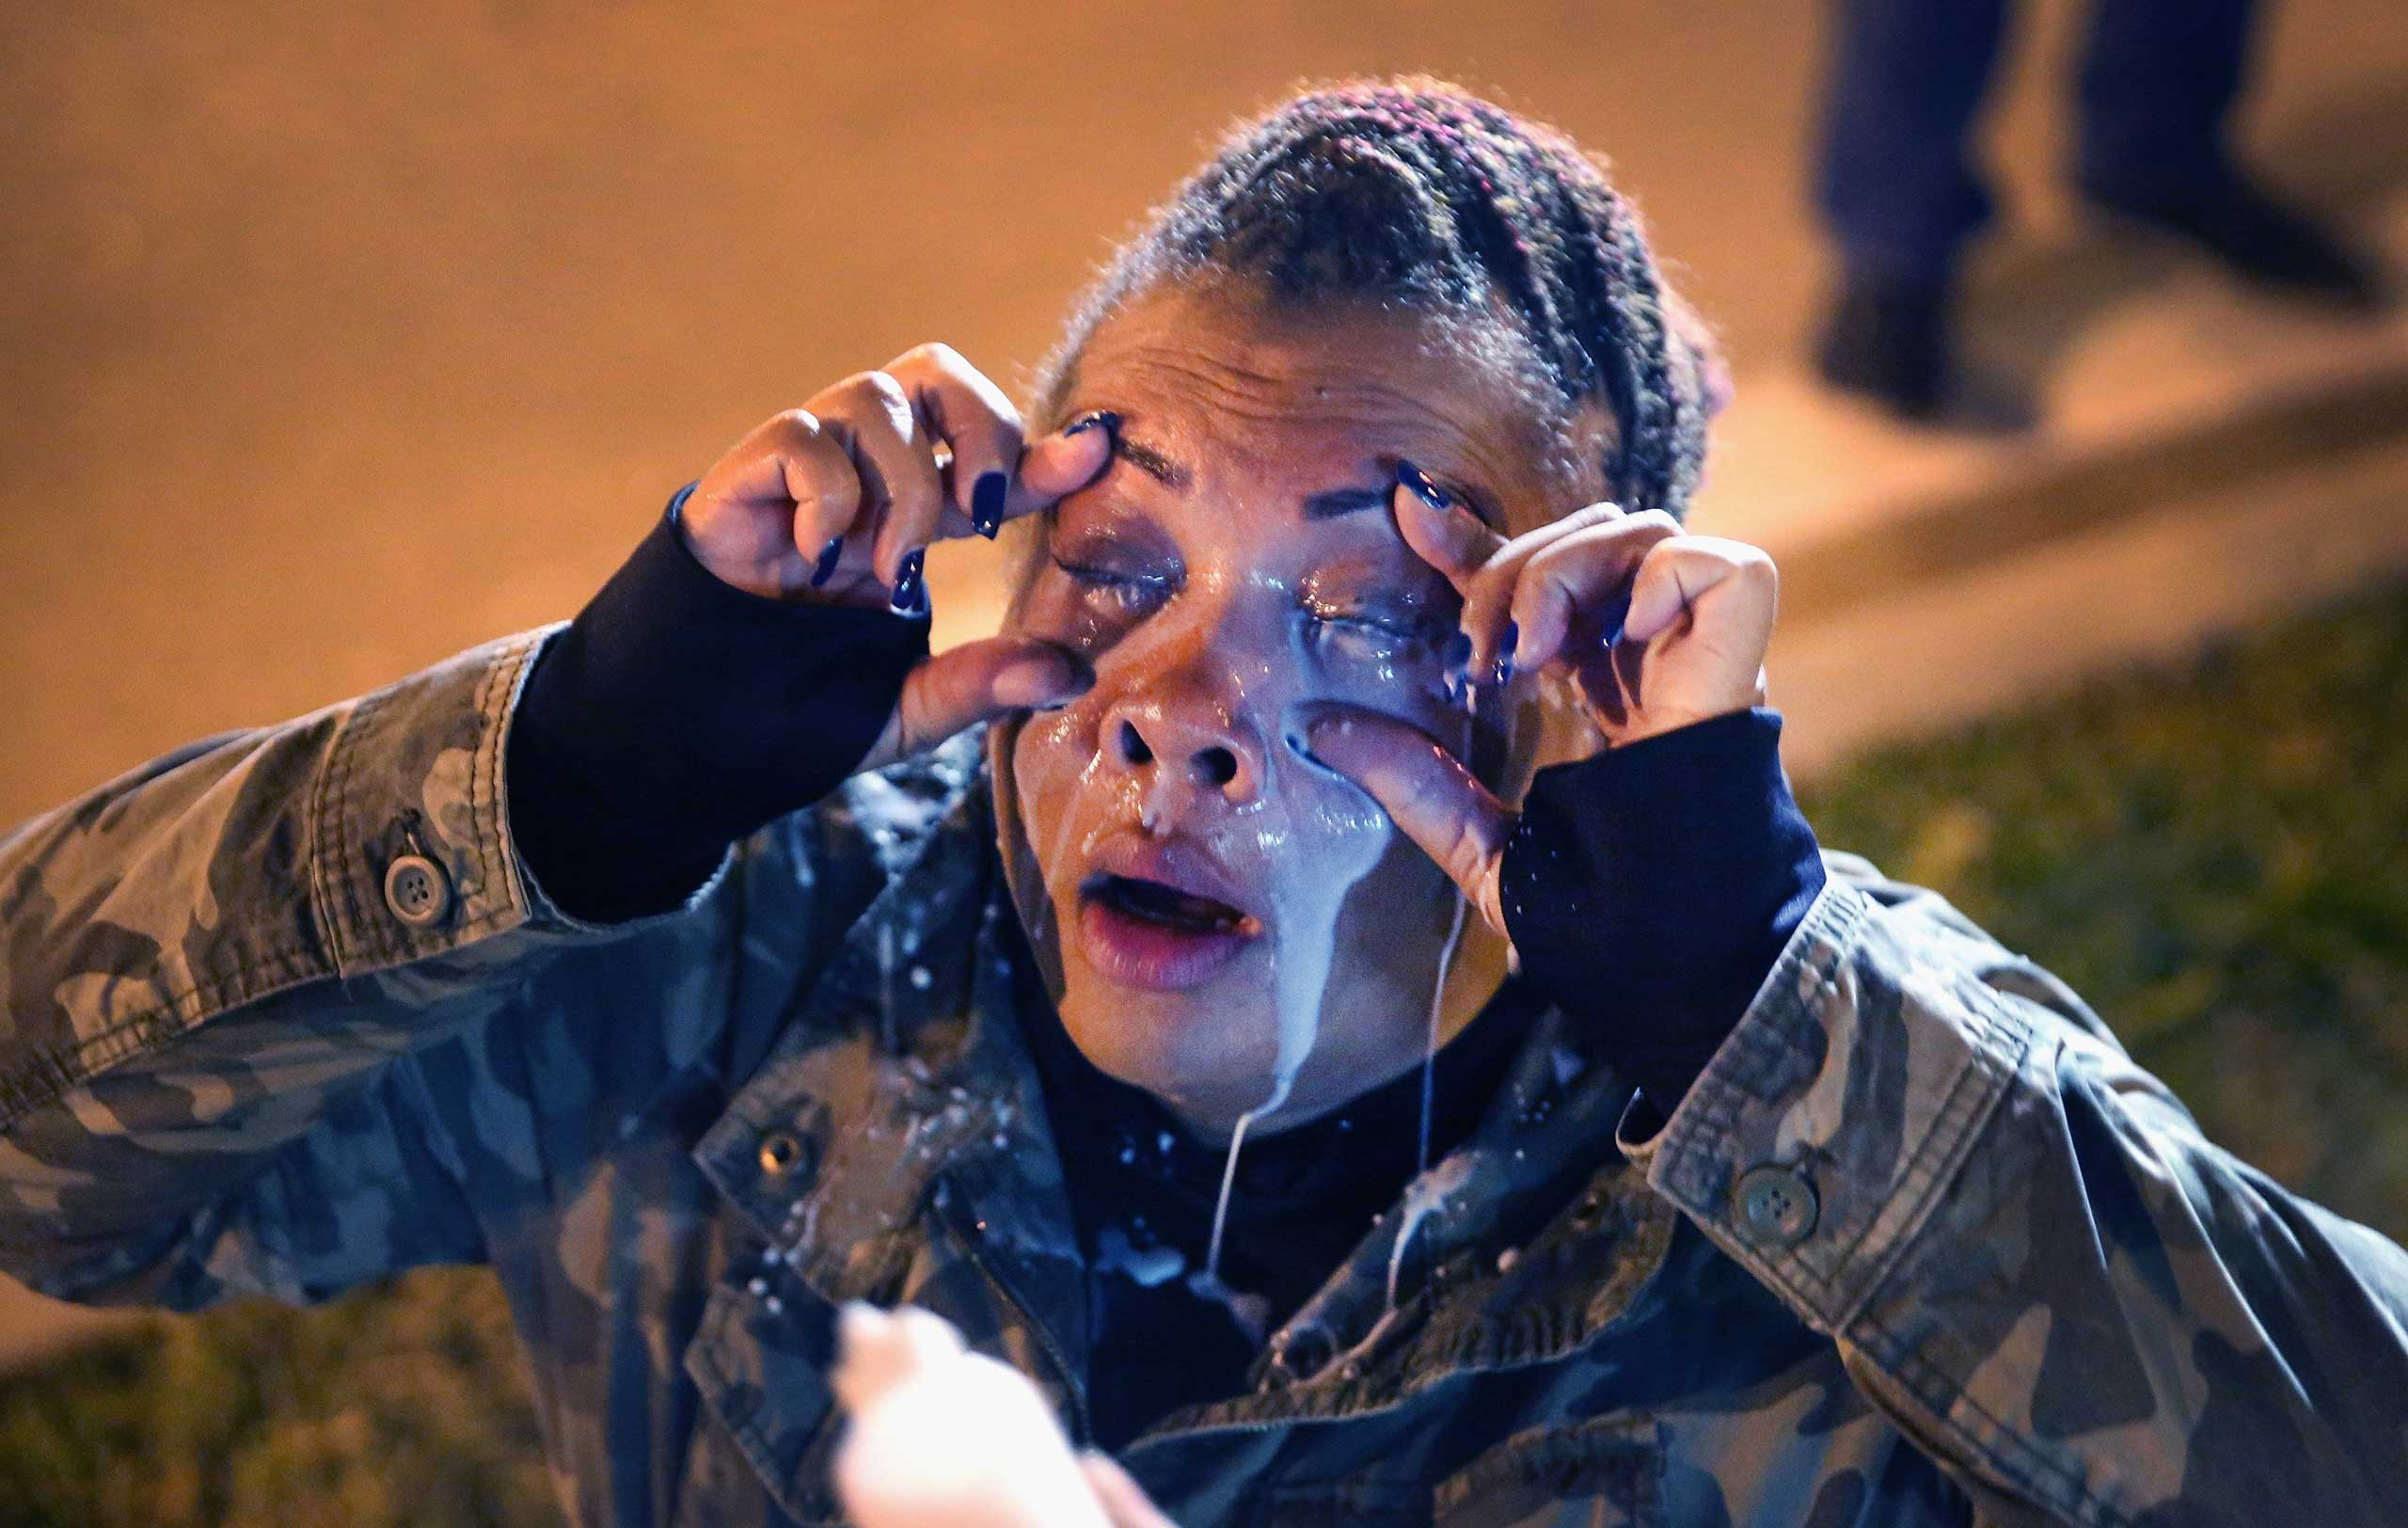 A demonstrator gets help after being maced by police in St. Louis on Oct. 12, 2014.